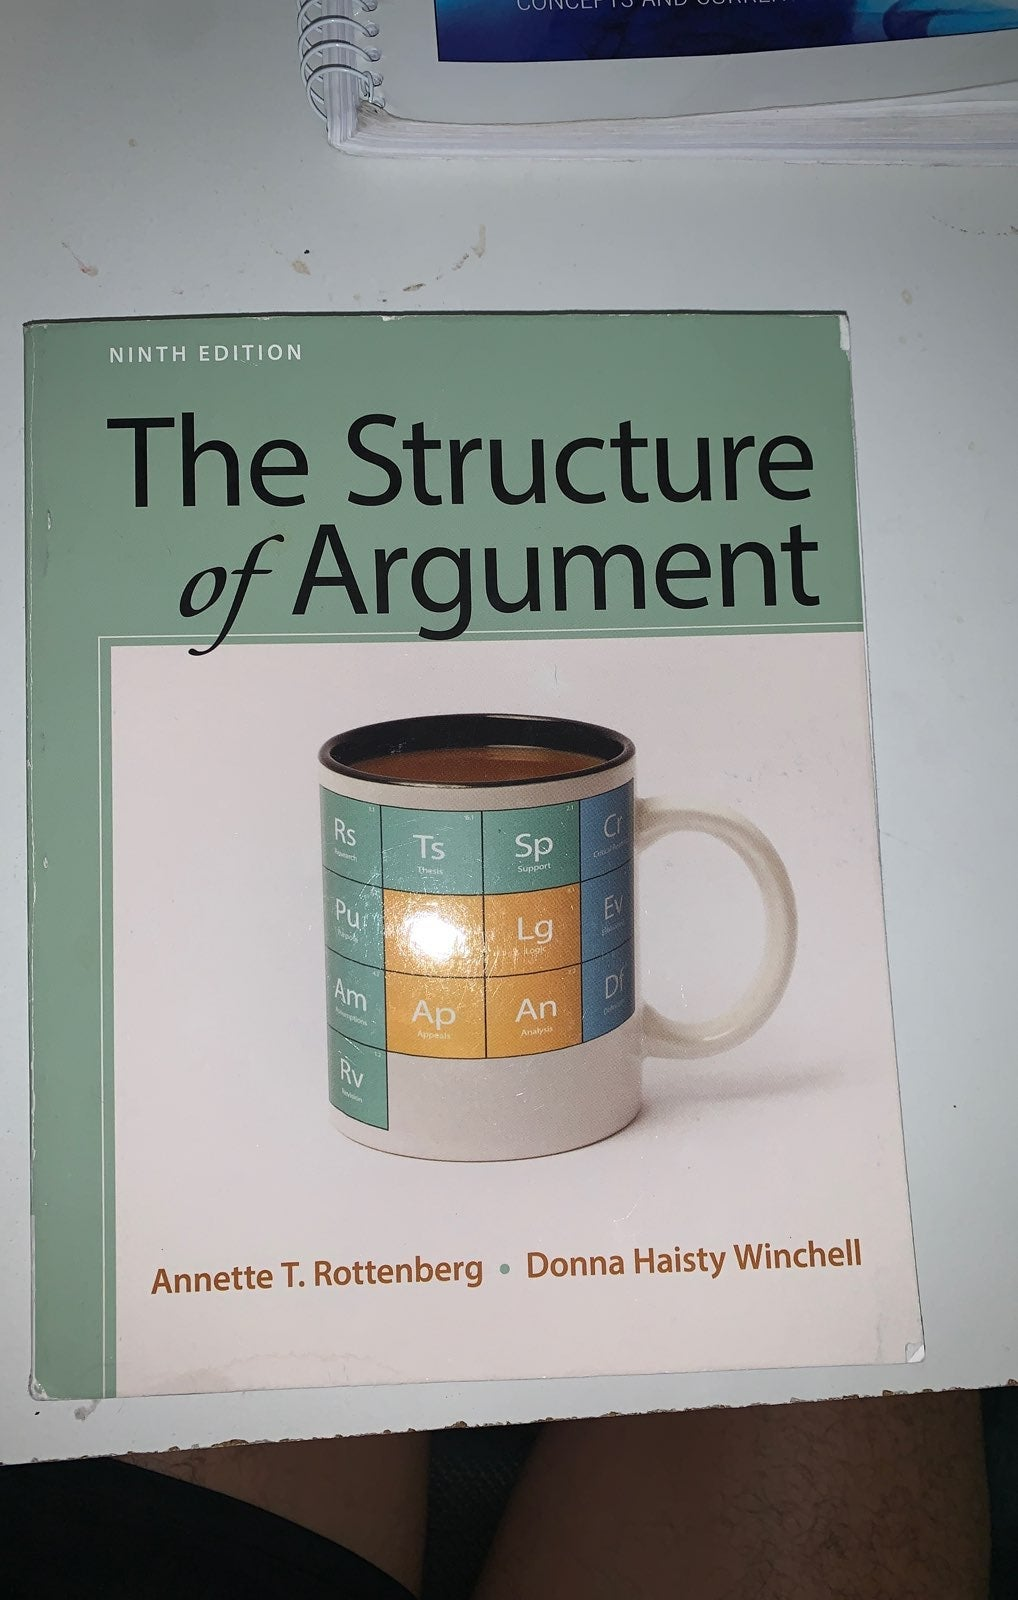 College Book, The Structure of Argument